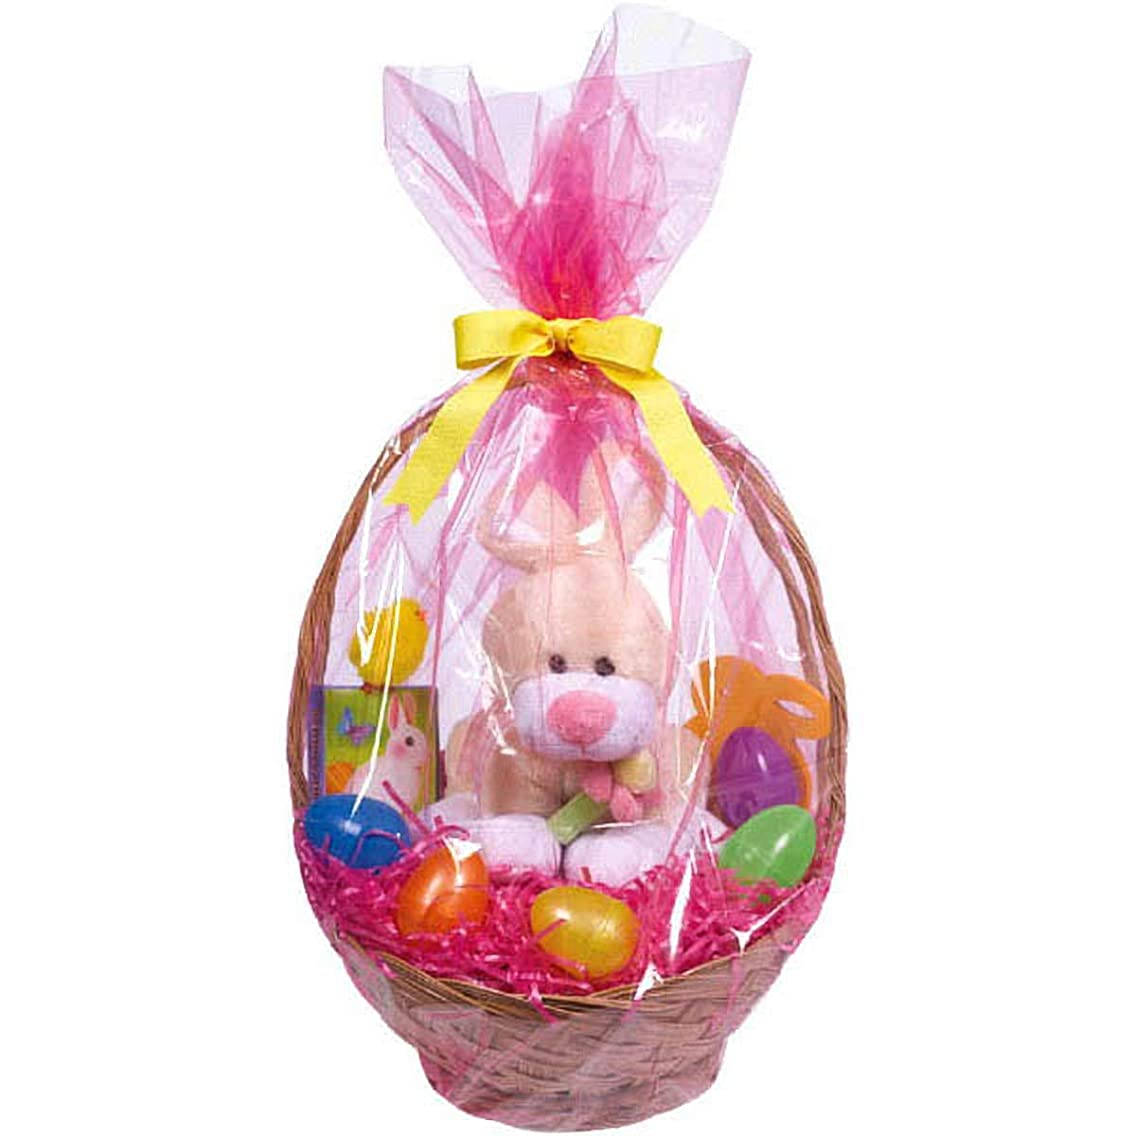 Egg-stra Special Easter Basket Plastic Wrap Bags | Party Favor | 12 Pk.